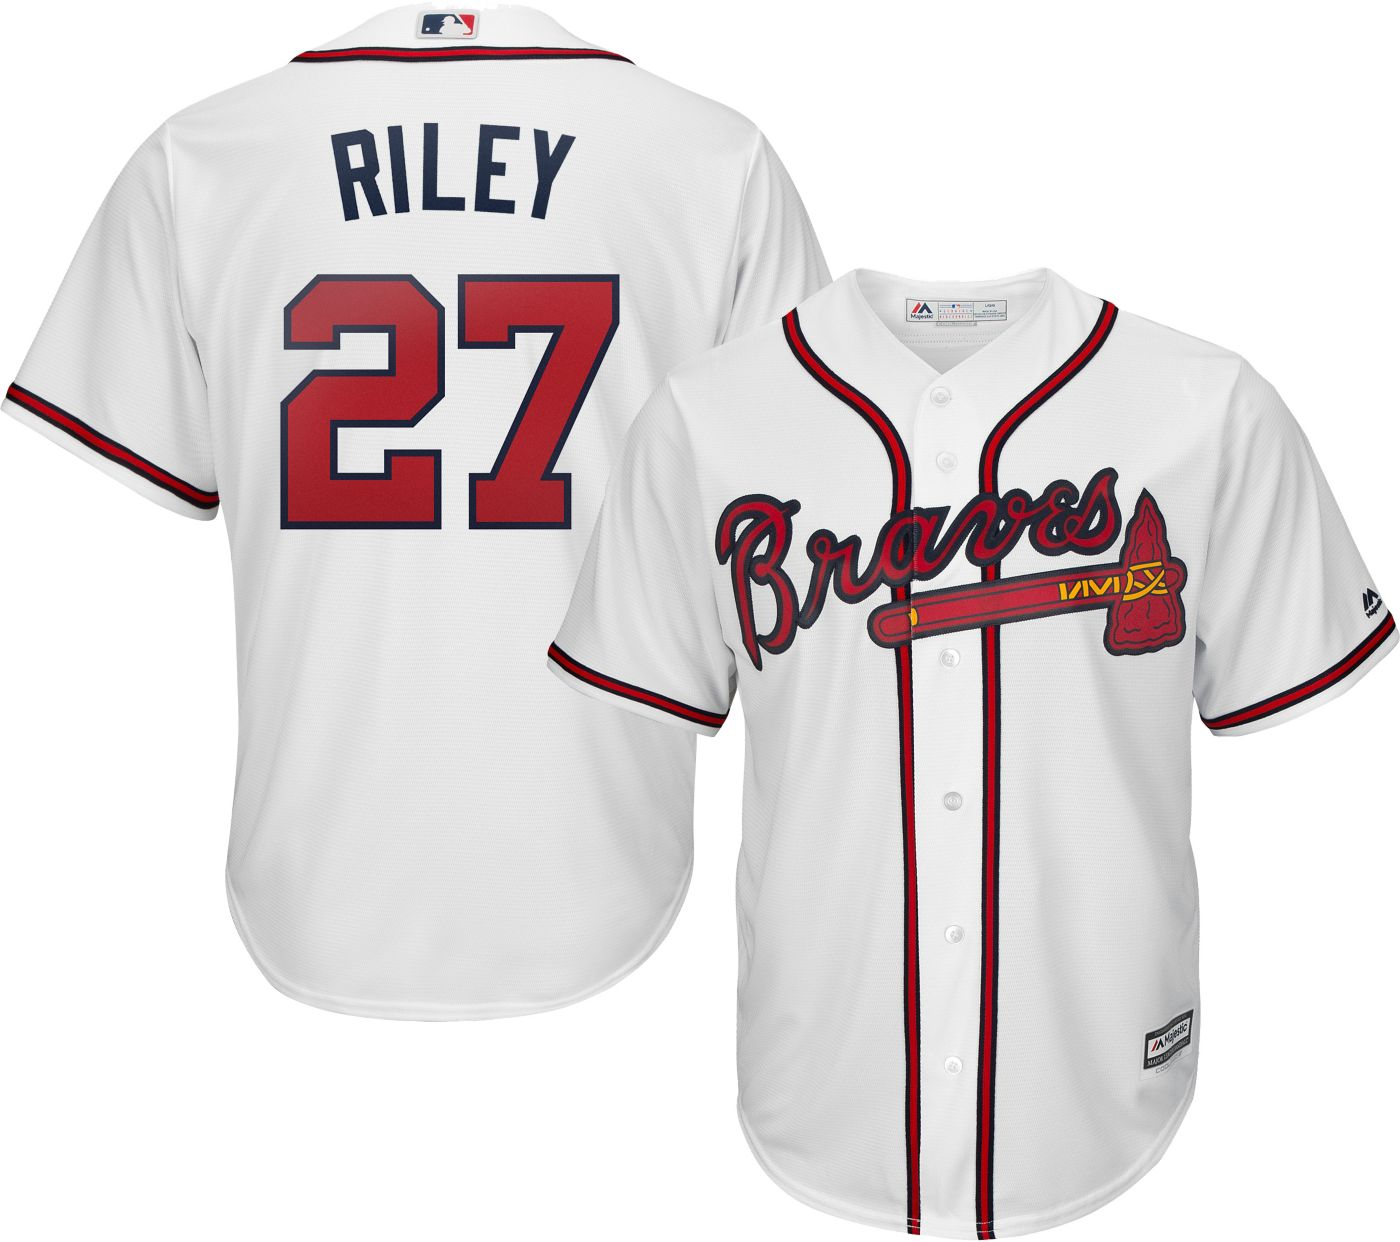 Majestic Men's Replica Atlanta Braves Austin Riley #27 Cool Base Home White Jersey